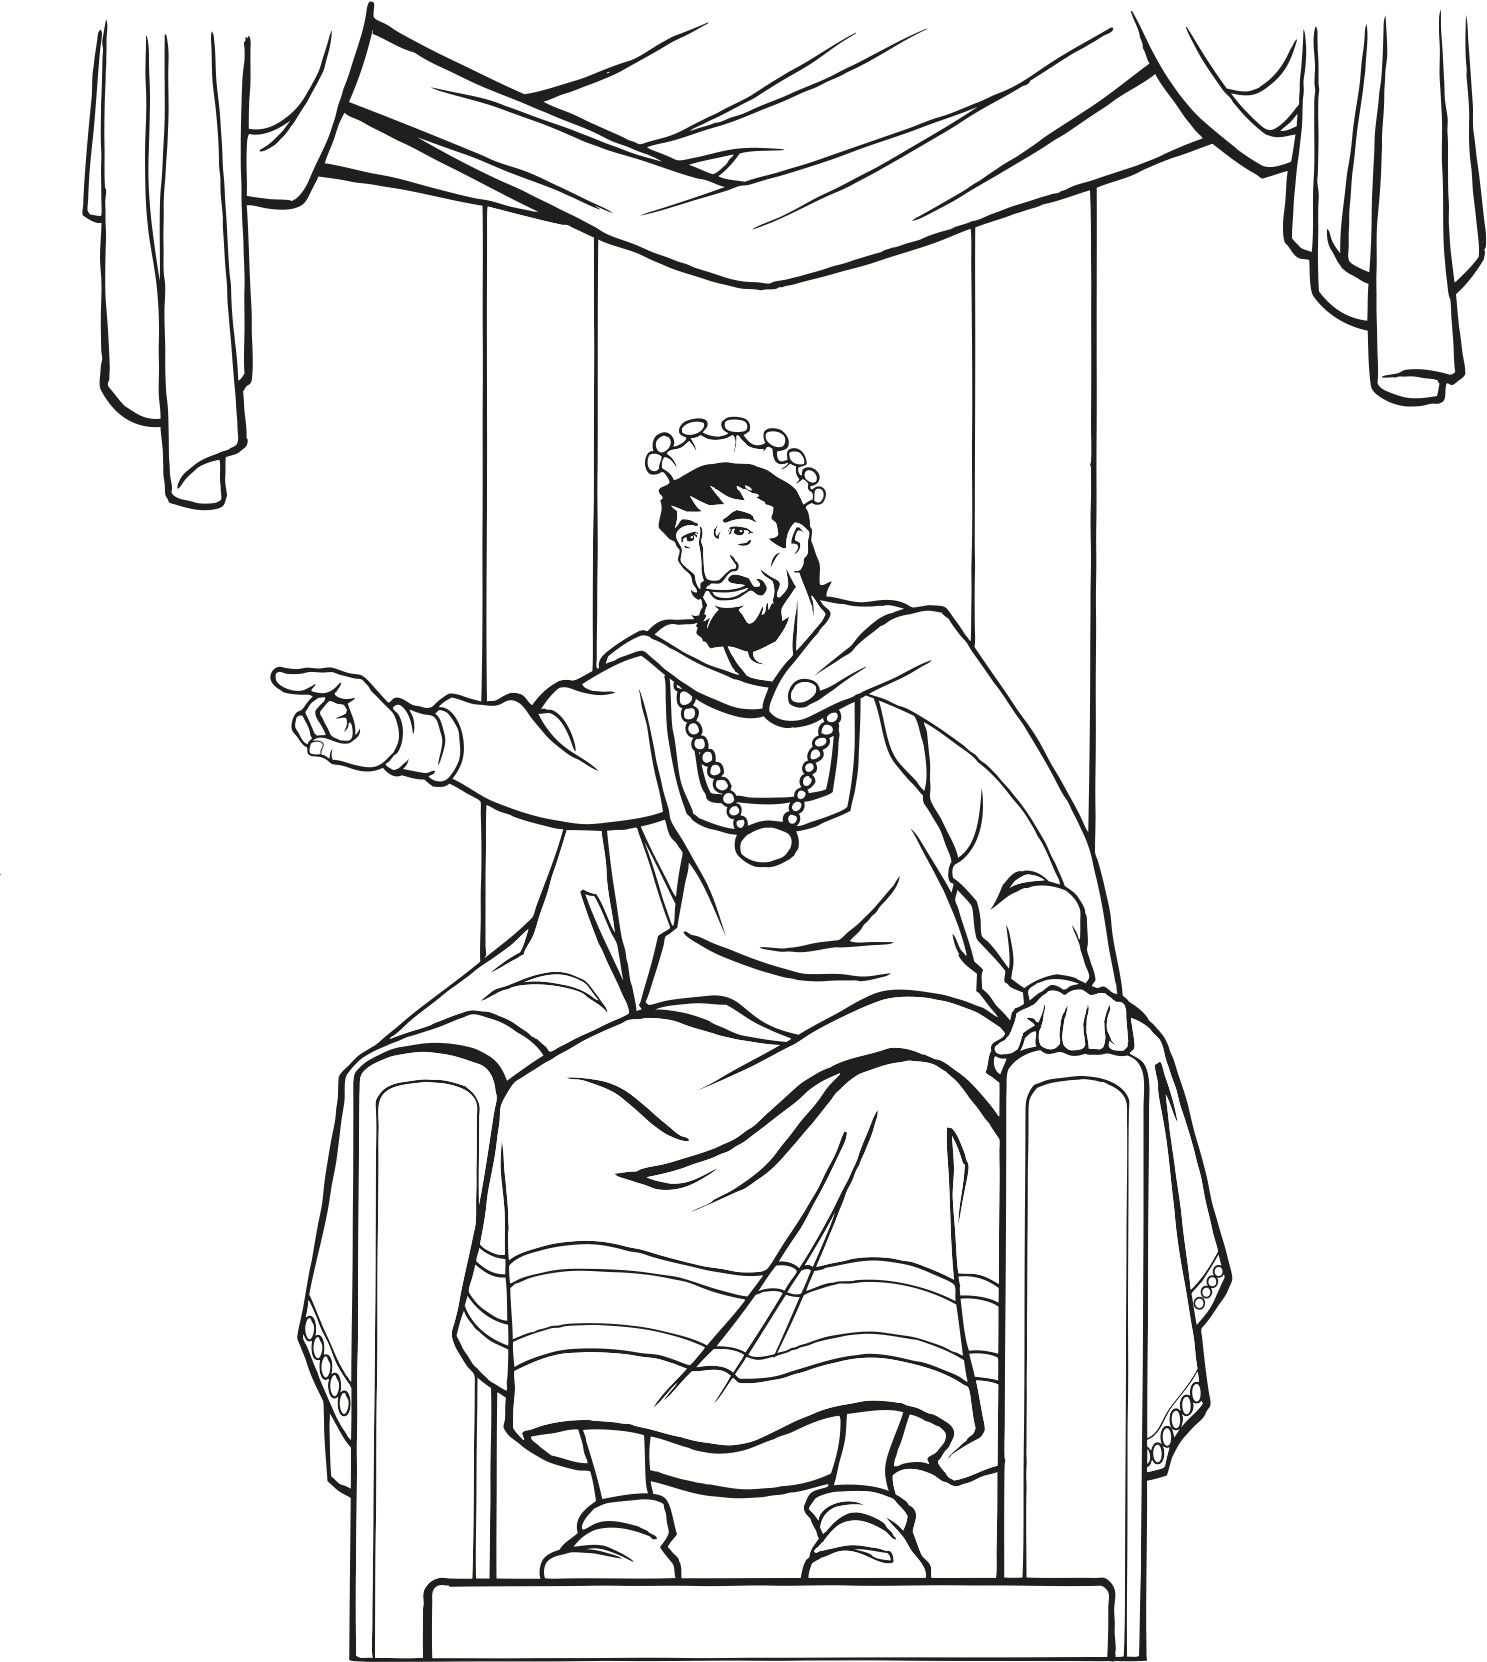 Childrens coloring sheet of saul and ananias - Medieval King On Throne Coloring Page